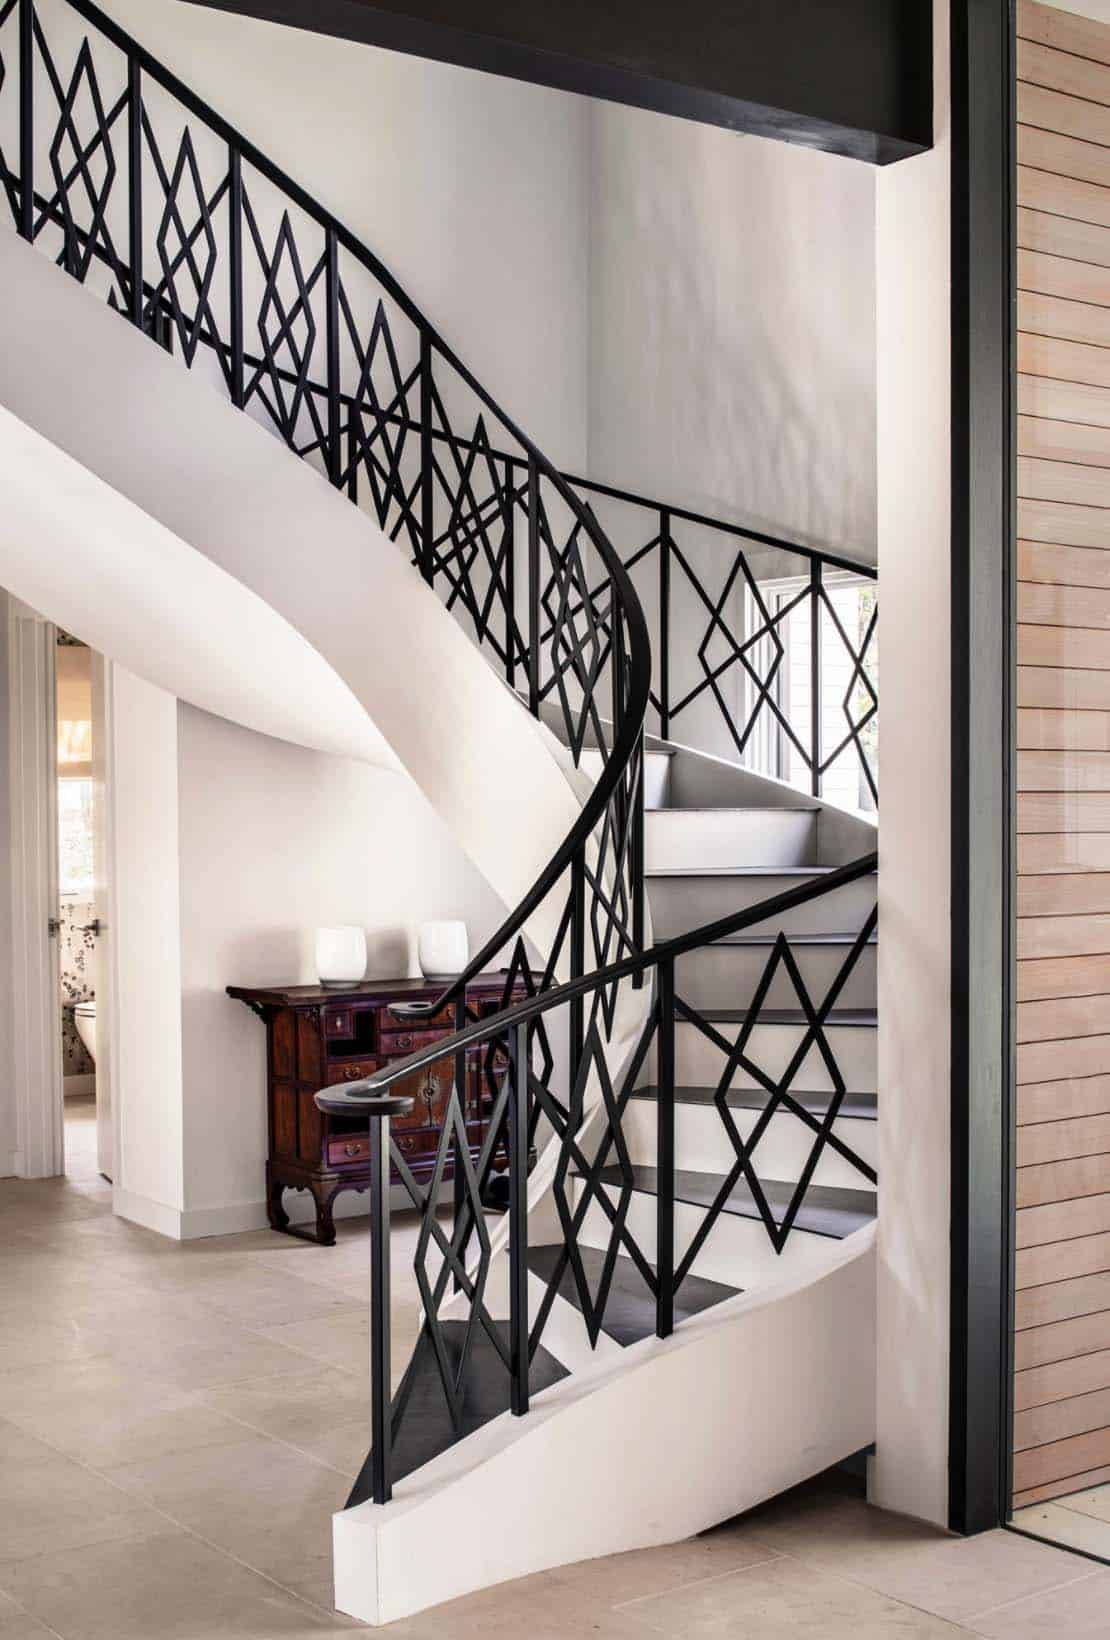 Midcentury Modern Renovation Creates Inspired Living In Austin - Beautiful interiors with asian influences tarrytown residence by webber studio architects